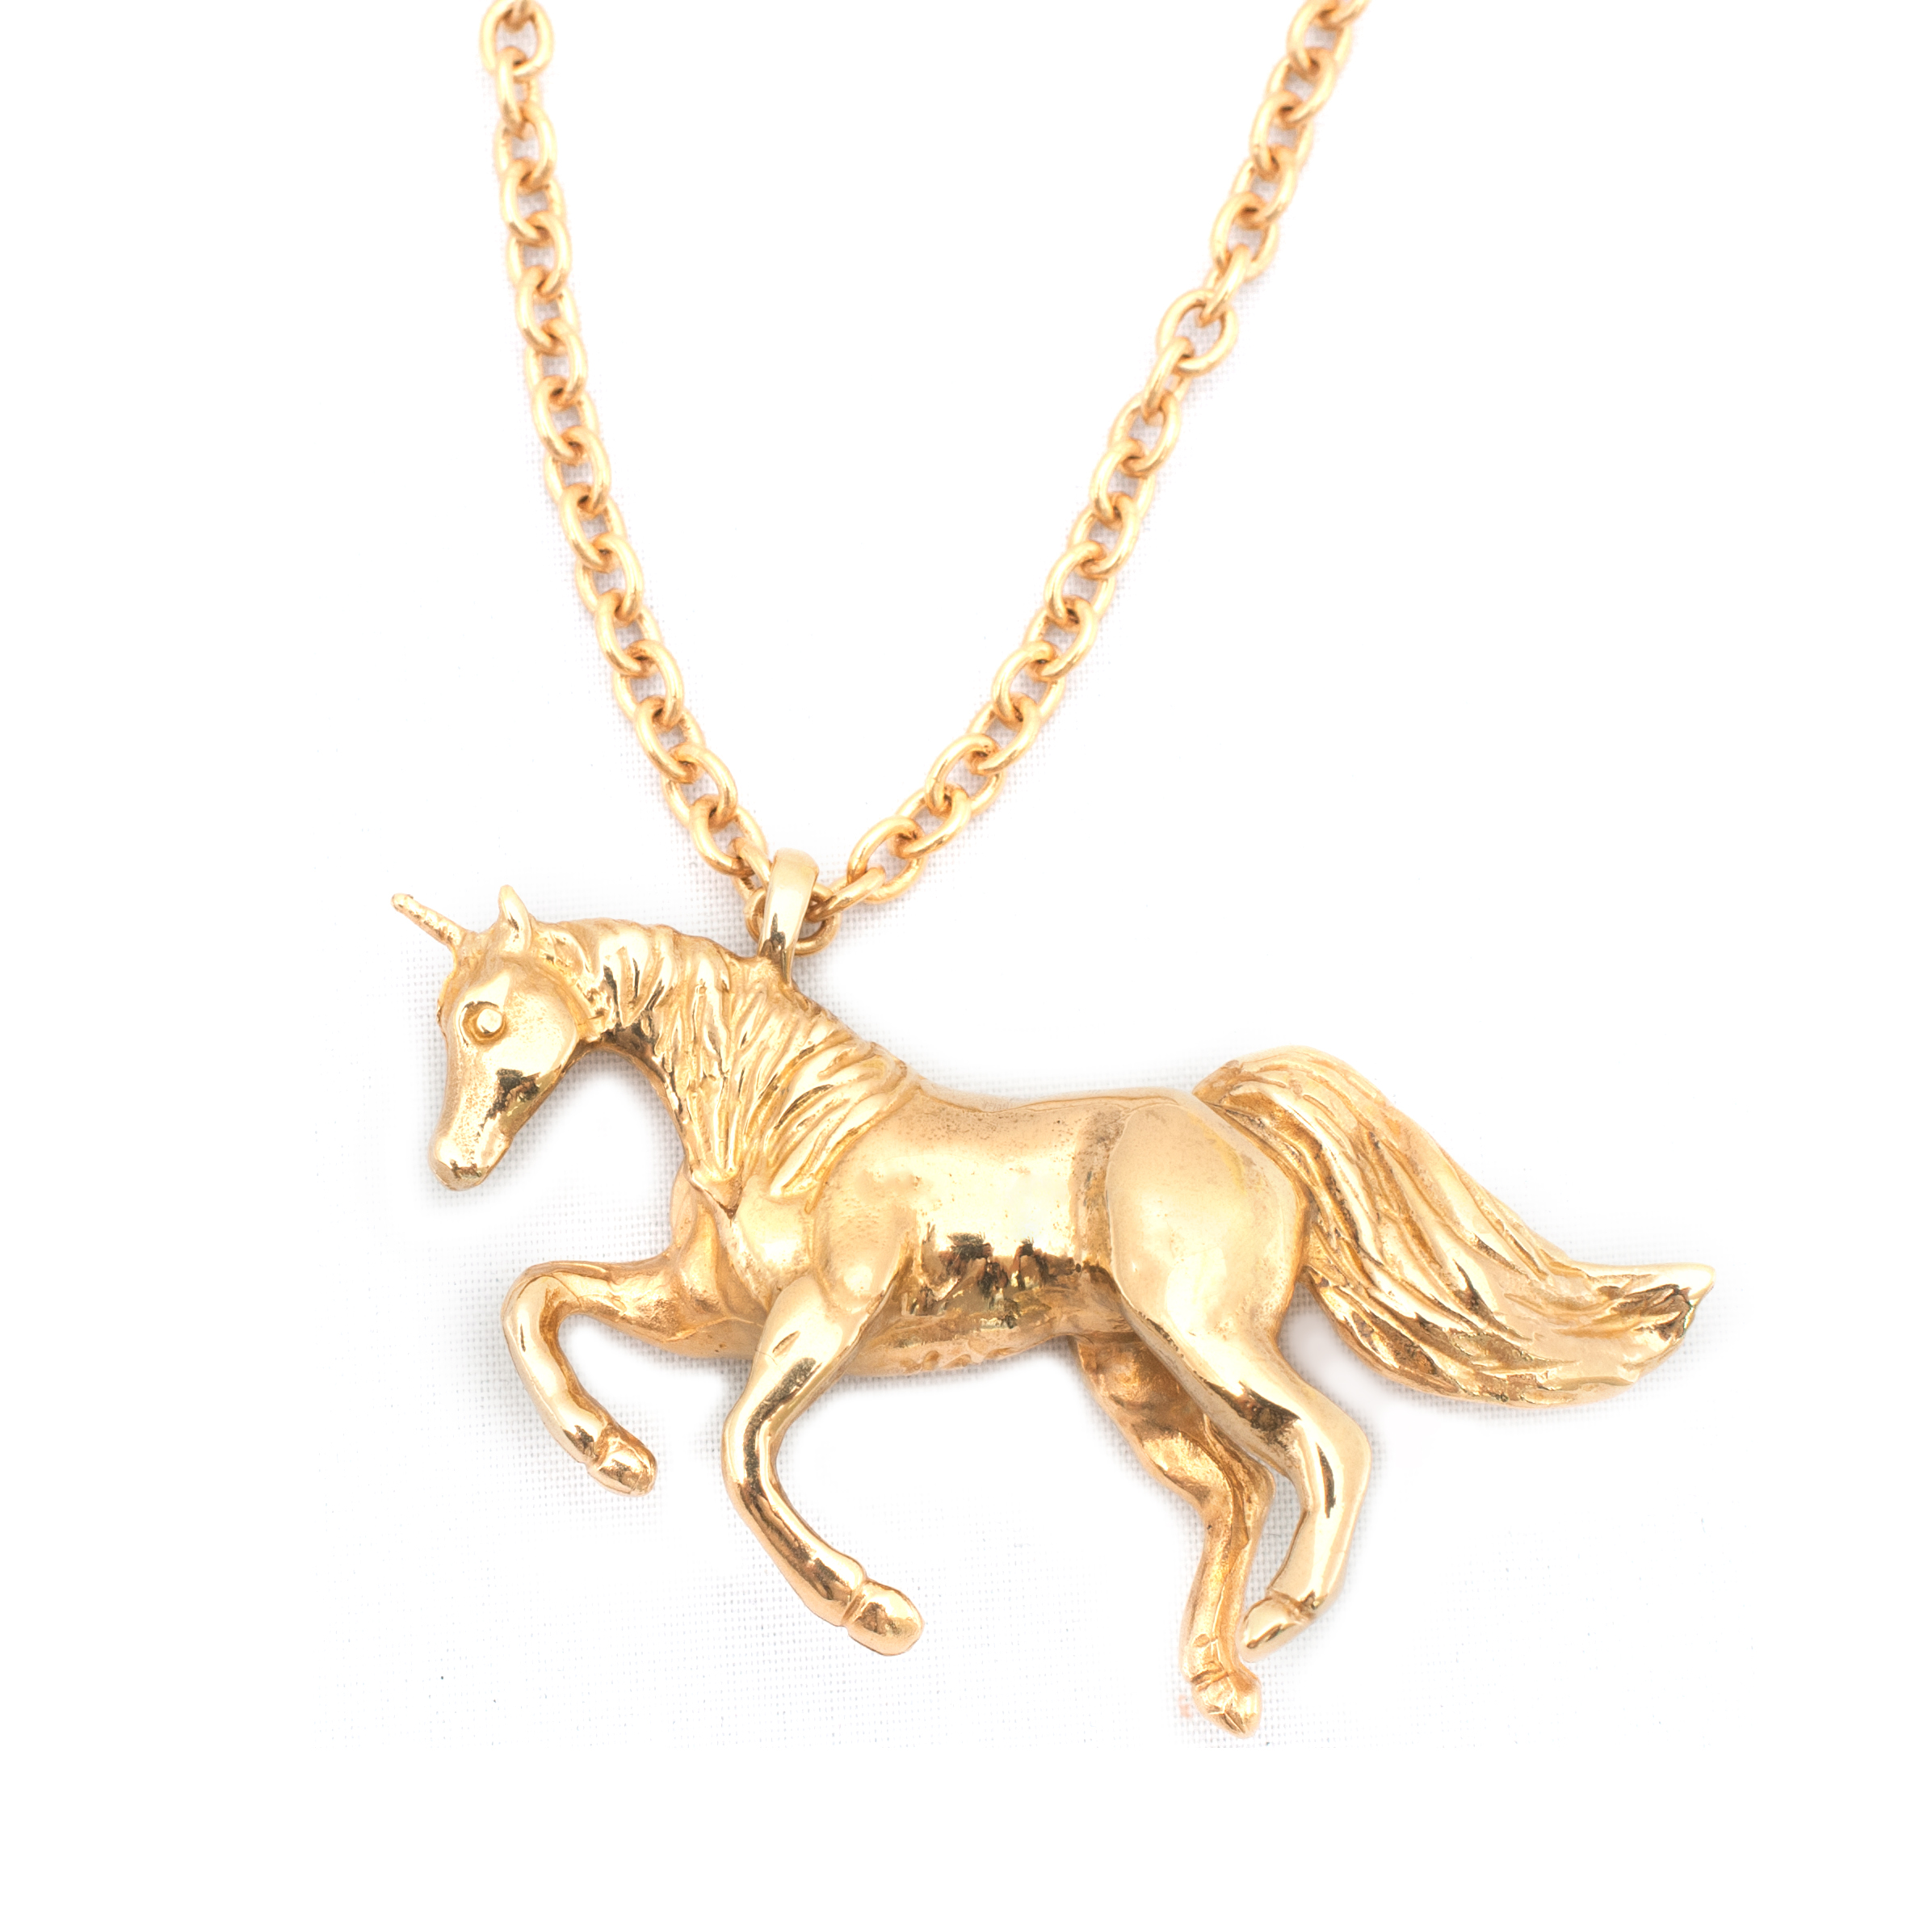 jewelry yellow overstock necklace shipping watches gold free product dolphin today